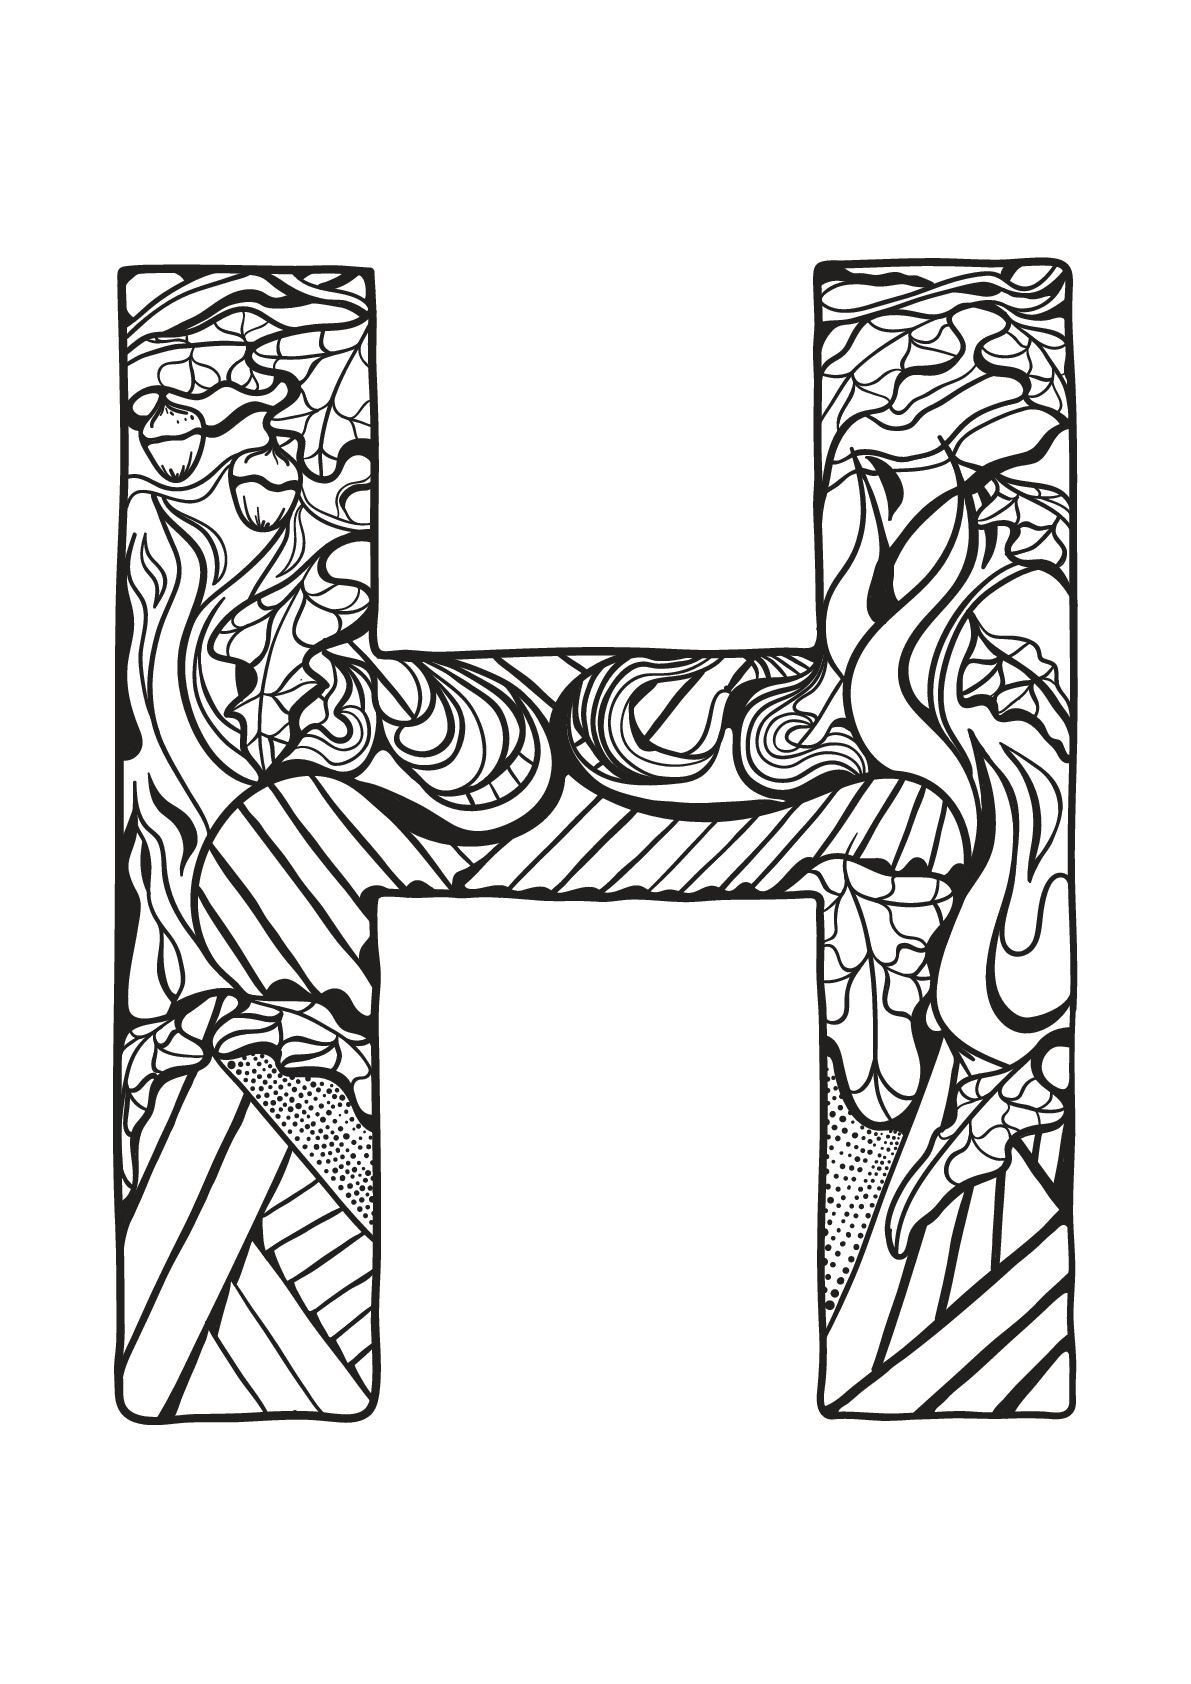 Alphabet free to color for children : H - Alphabet Kids Coloring Pages